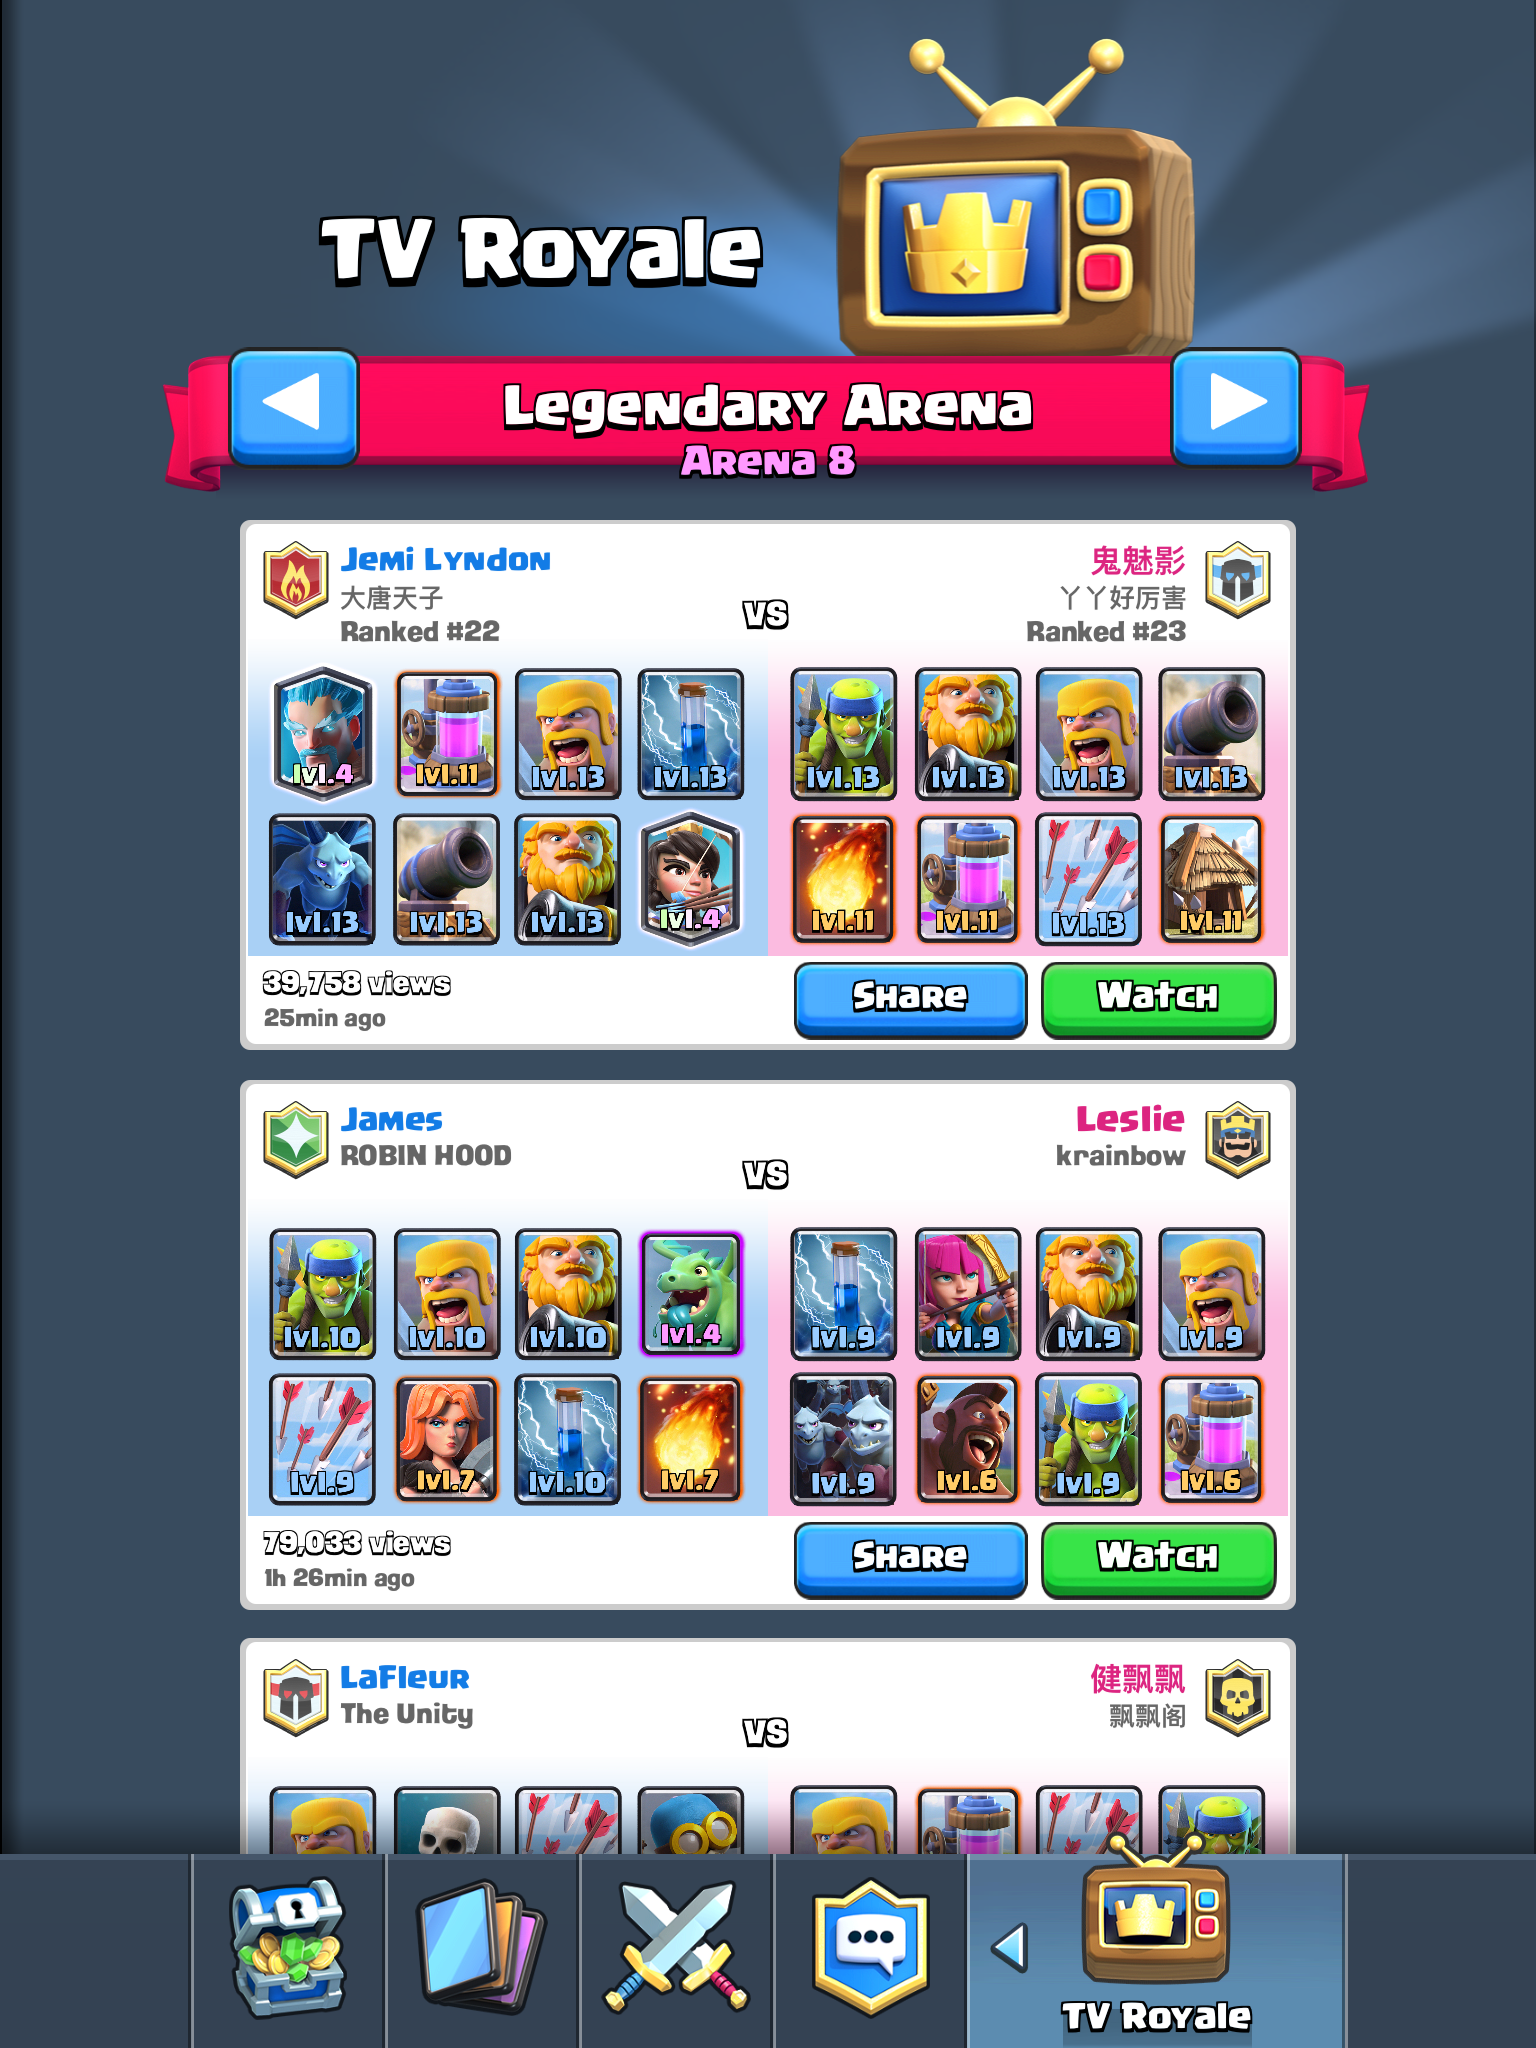 Datei:TV Royale.png